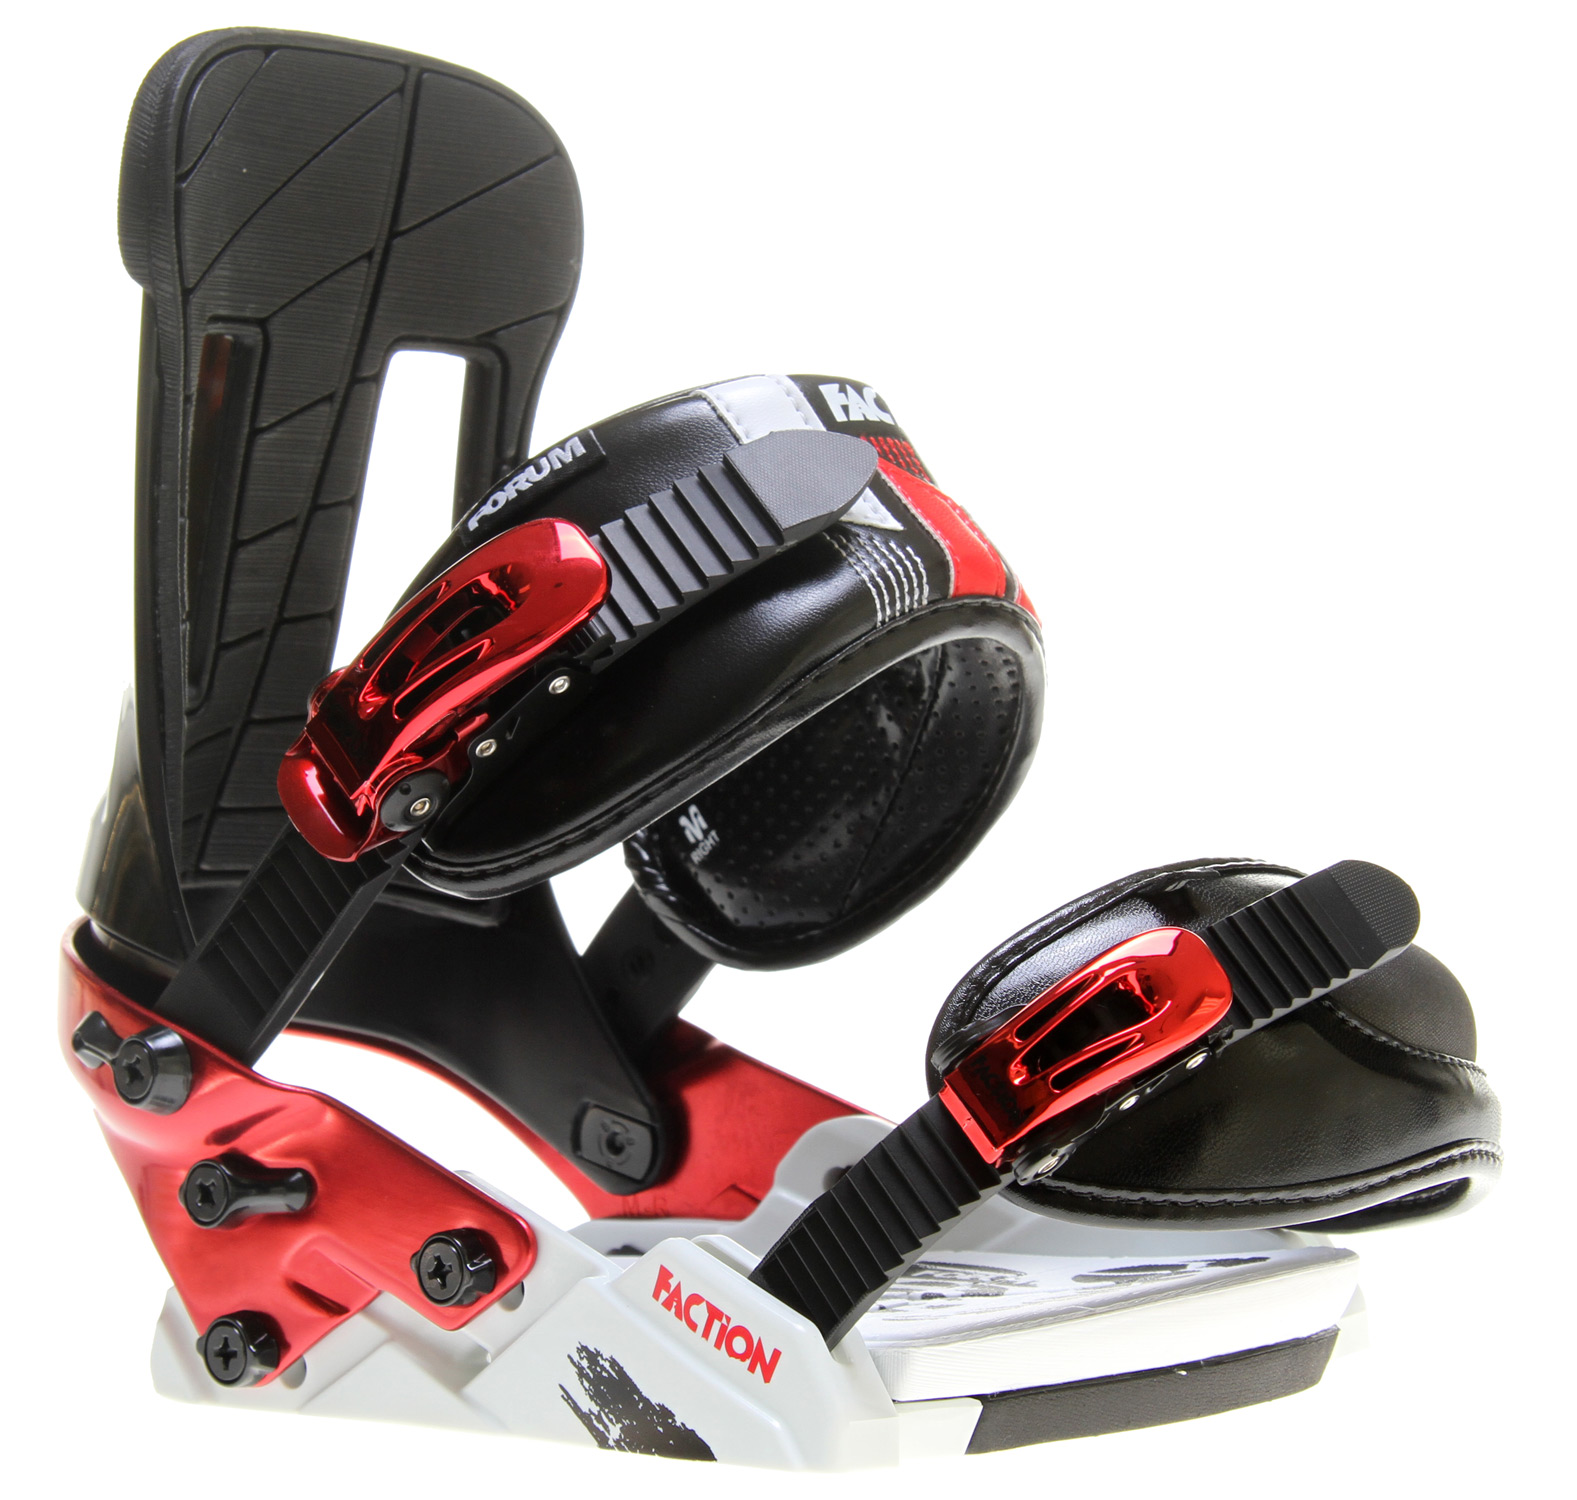 Snowboard Satis-Faction Bindings are arguably the most important part of your setup, so why settle for less? The Forum Faction has everything you need to improve your park riding. Most importantly, our Good Vibes Hinge Disk and Split baseplate, allow your board to flex naturally underfoot giving you more freestyle feel. To boot, the Faction is offered at a price that won't break the bank. This is true satisfaction. This is the Faction. Key Features of the Forum Faction Snowboard Bindings: Disk: Good Vibes Hinge Disk Comfort: Good Vibes EVA footpad Ankle Strap: Bubbler Toe Strap: Throwdown cap Baseplate Material: 30% glass-filled nylon with aircraft-grade aluminum heelhoop Feel 4 - $111.95